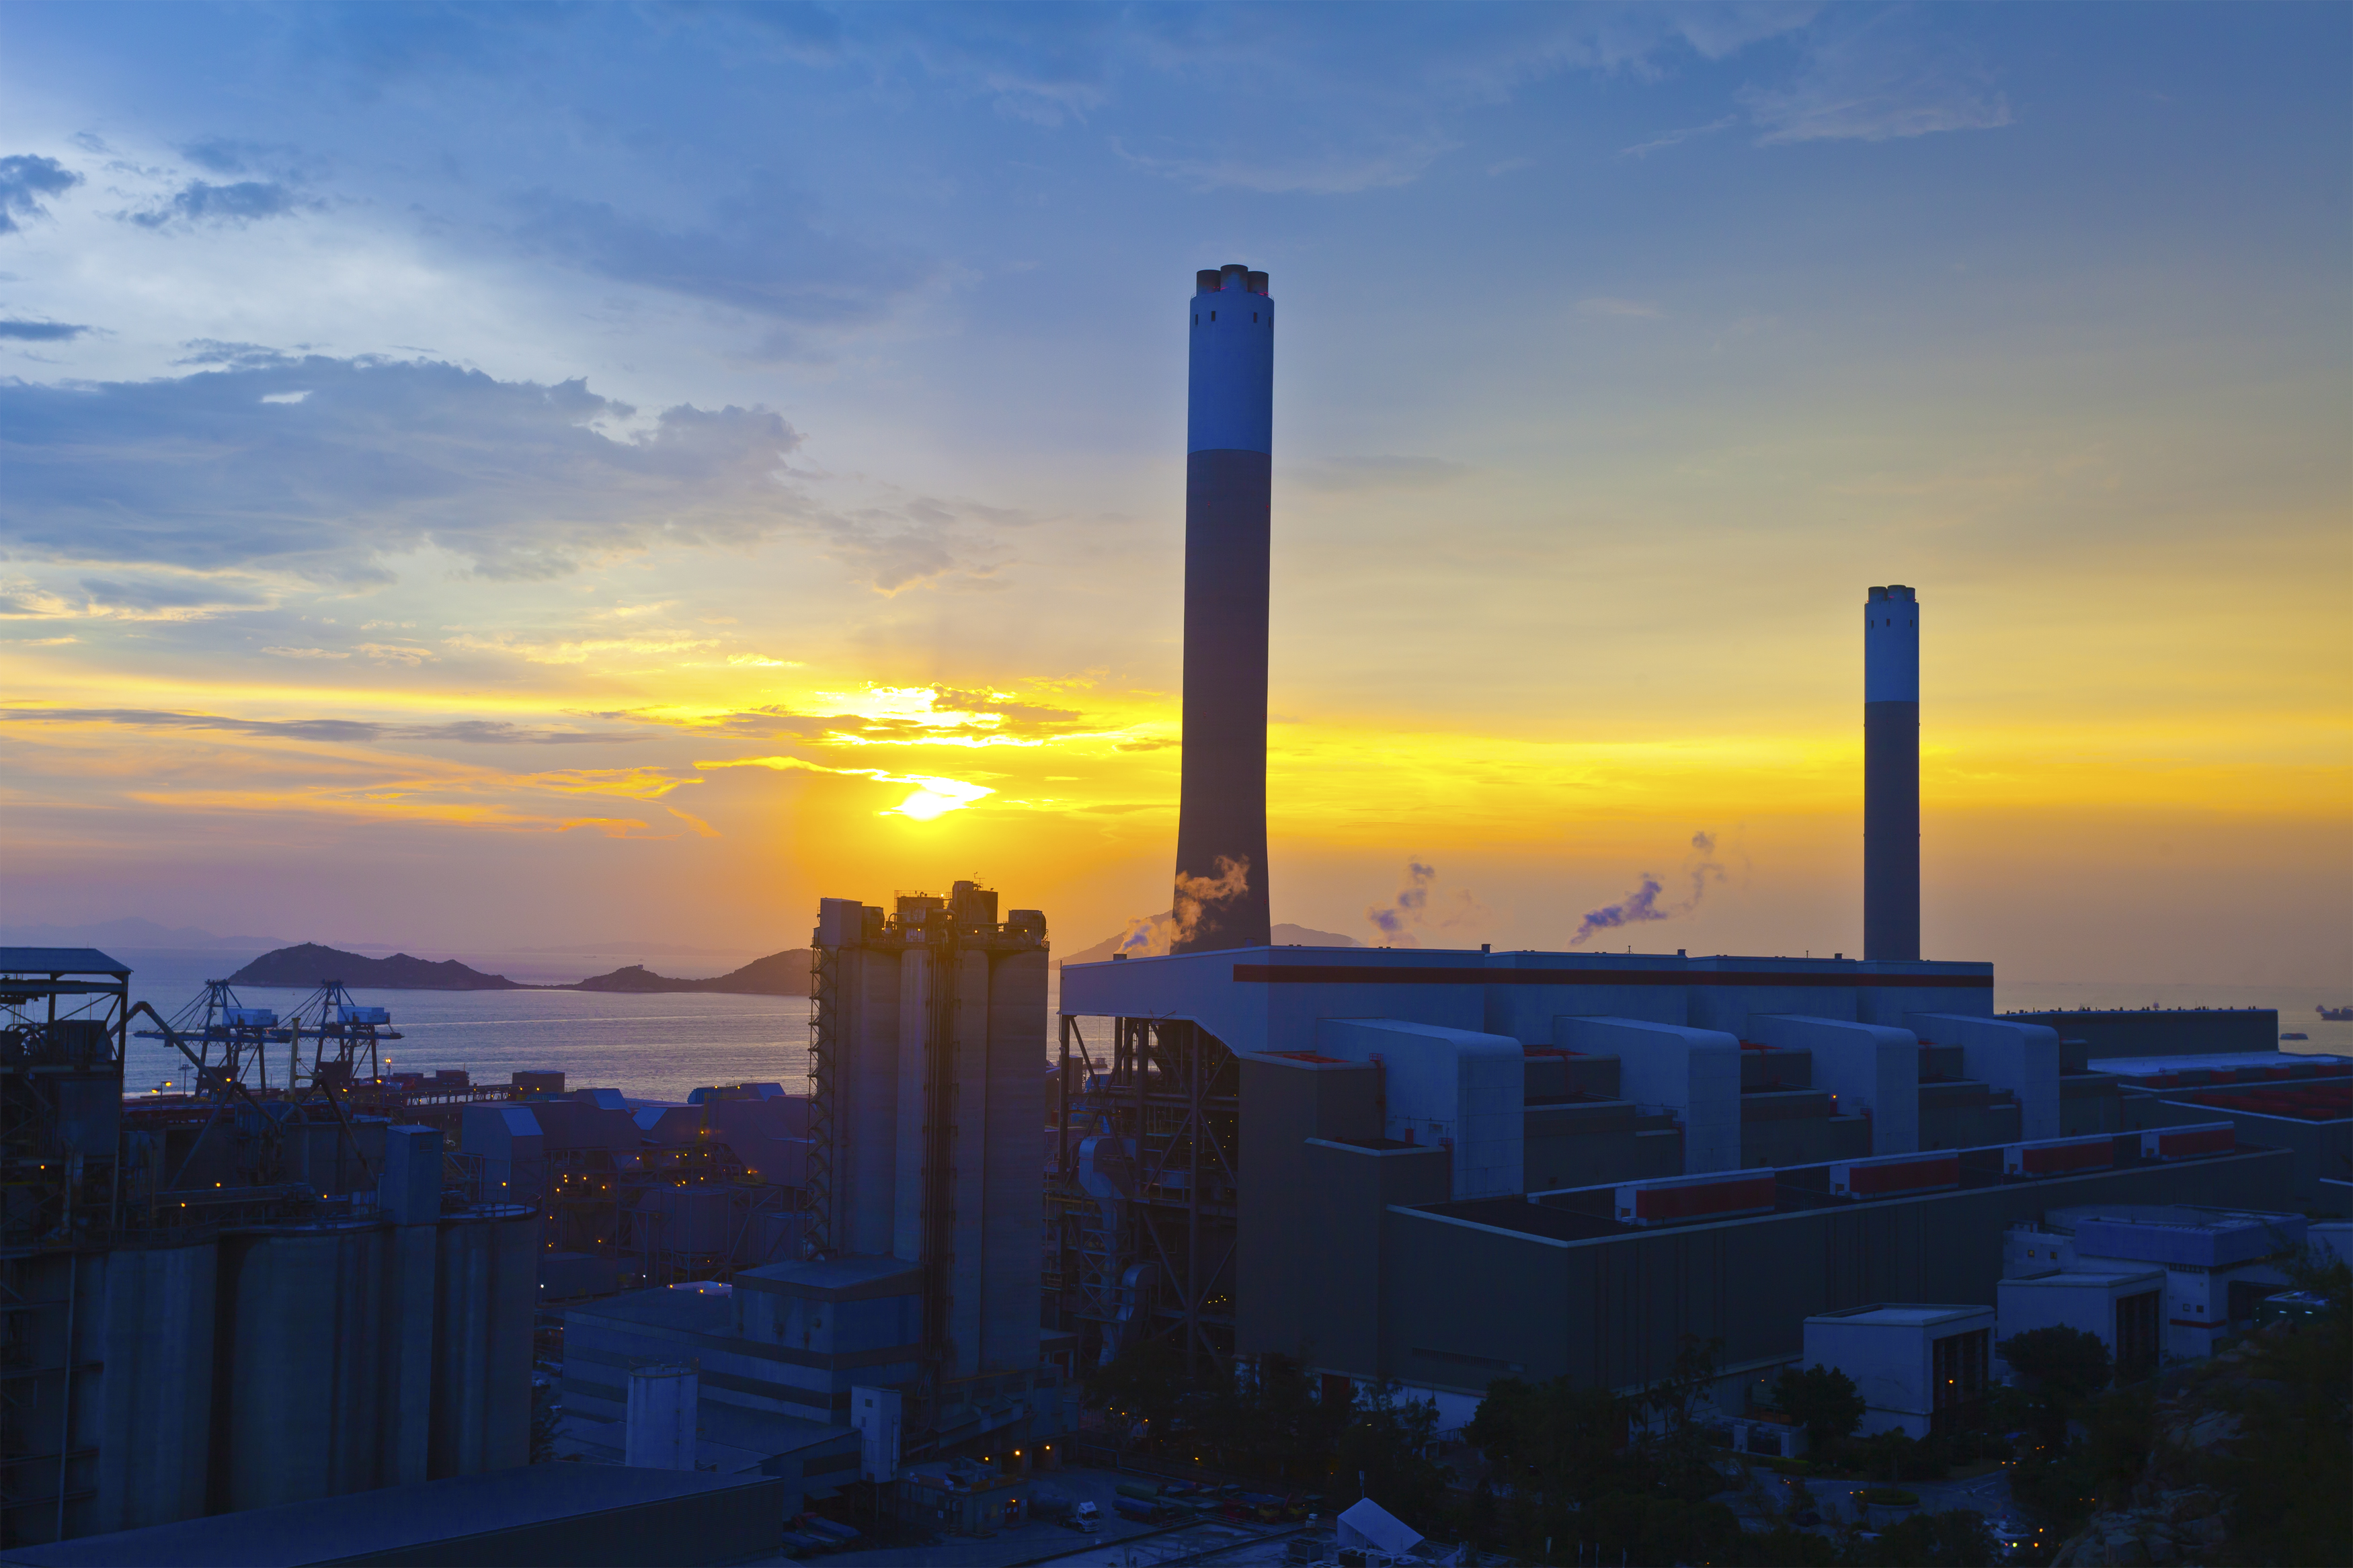 Thermal power boiler feed water treatment plant at sunset.